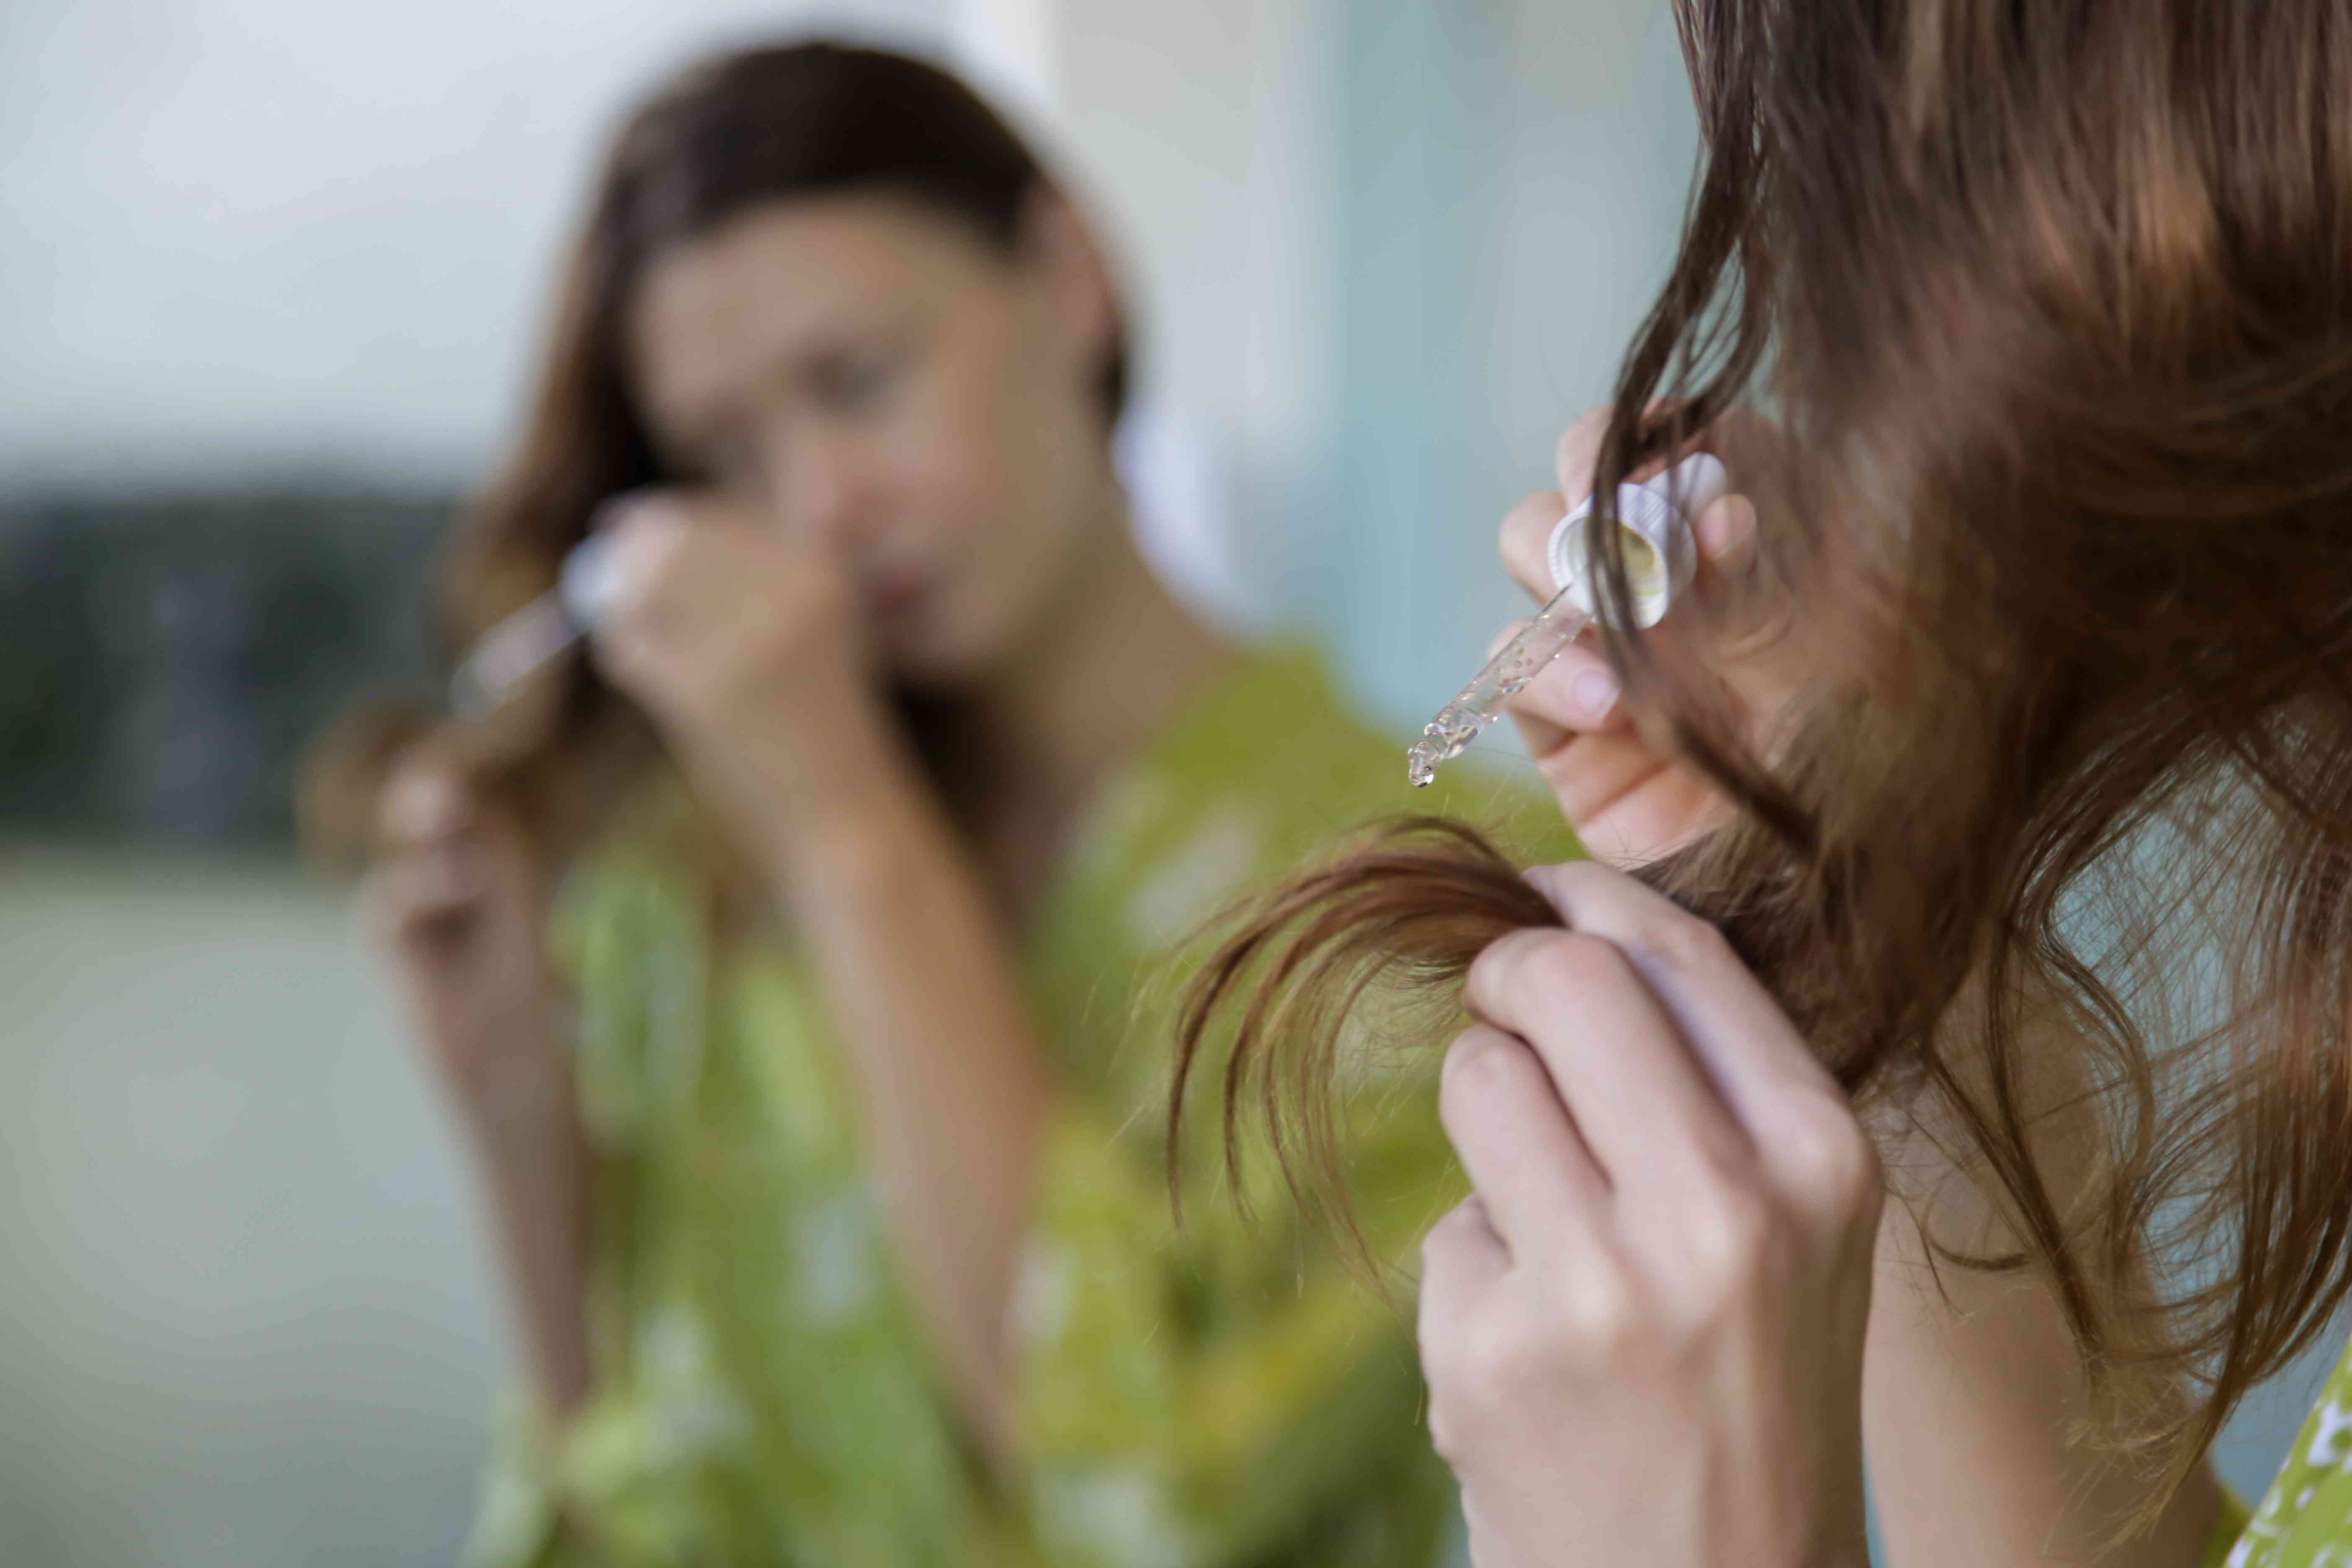 Hair care. Woman applying oil on hair ends in the bathroom in front of the mirror. Split hair tips, dry hair or sun protection concept.